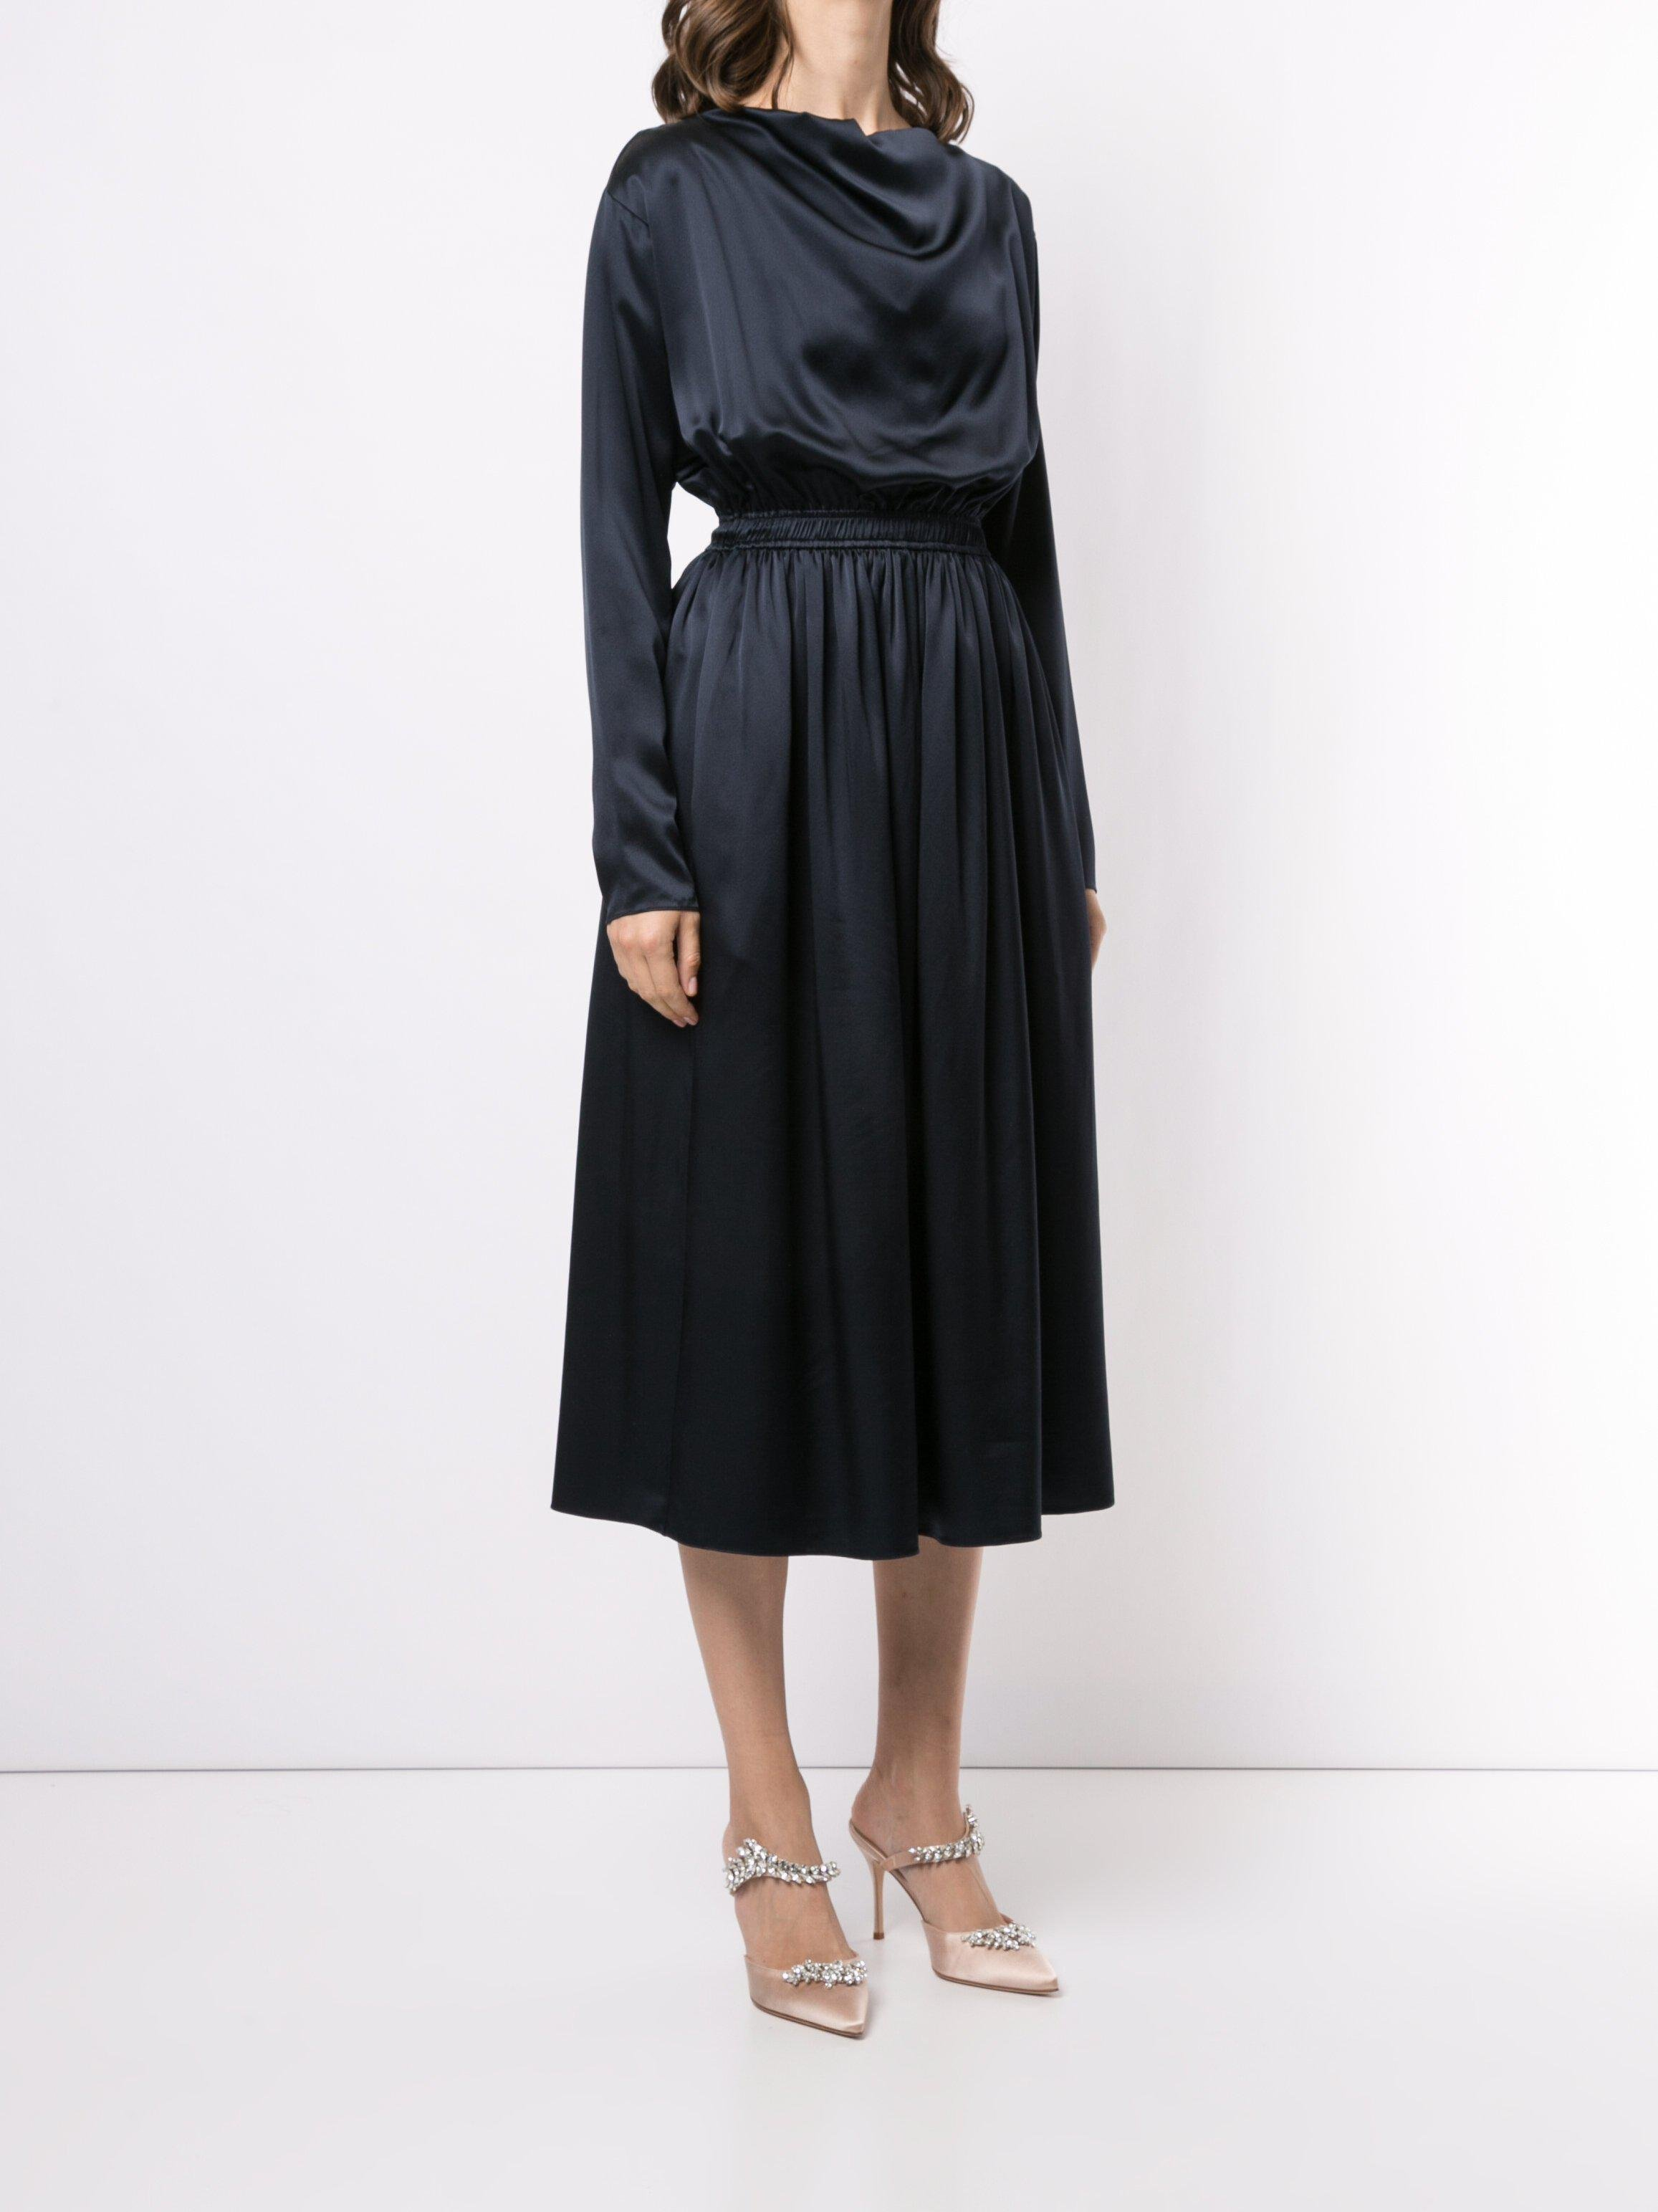 COWL NECK DRESS IN SILK CHARMEUSE 2